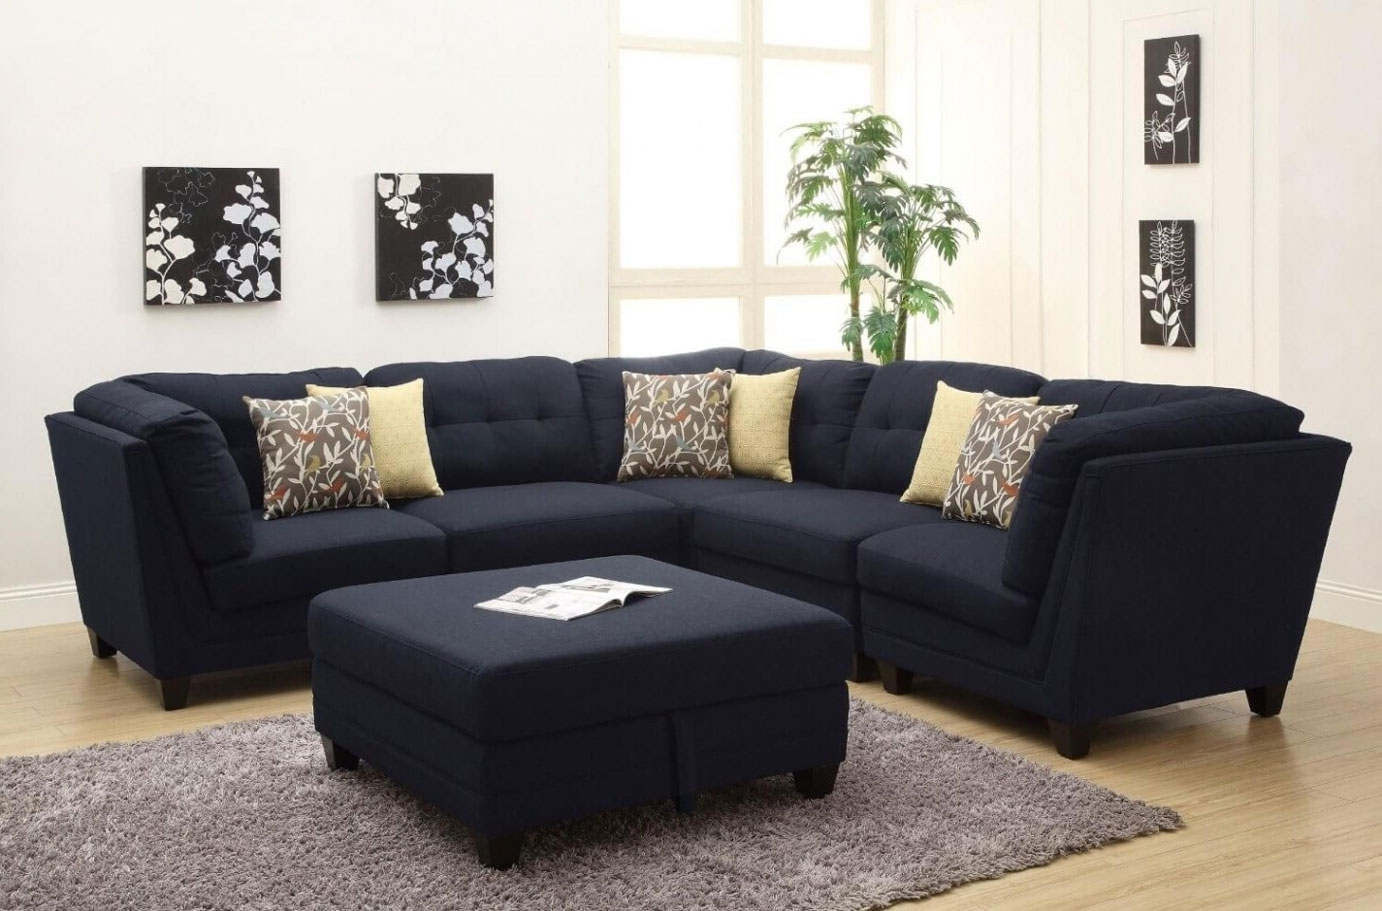 Sectional Sofa: Most Recommended Sectional Sofas Under $1000 Cheap Regarding Kamloops Sectional Sofas (View 7 of 10)